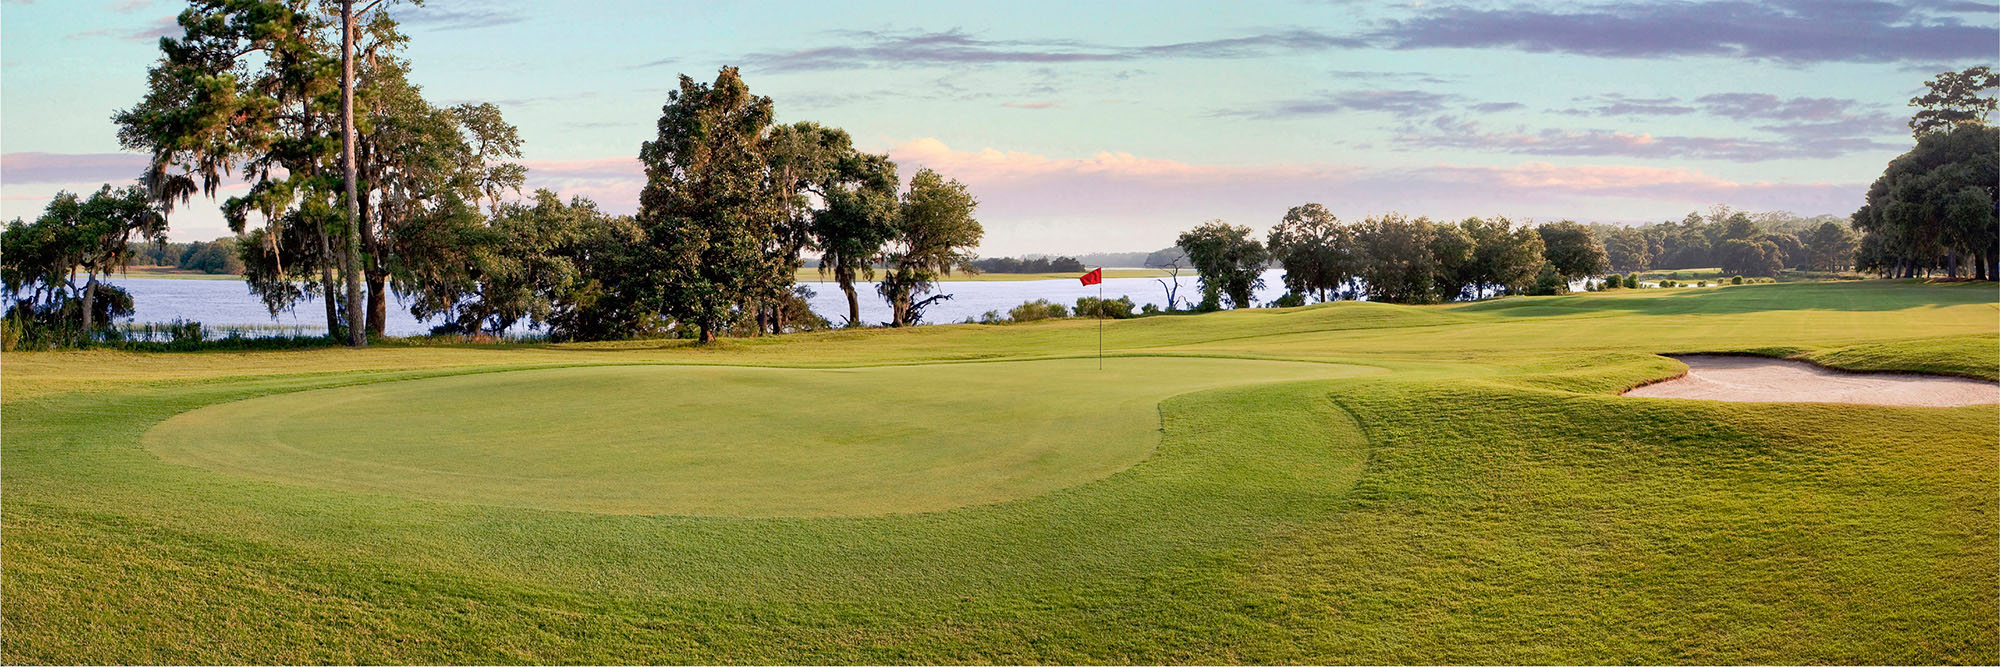 Golf Course Image - The Links at Stono Ferry No. 13